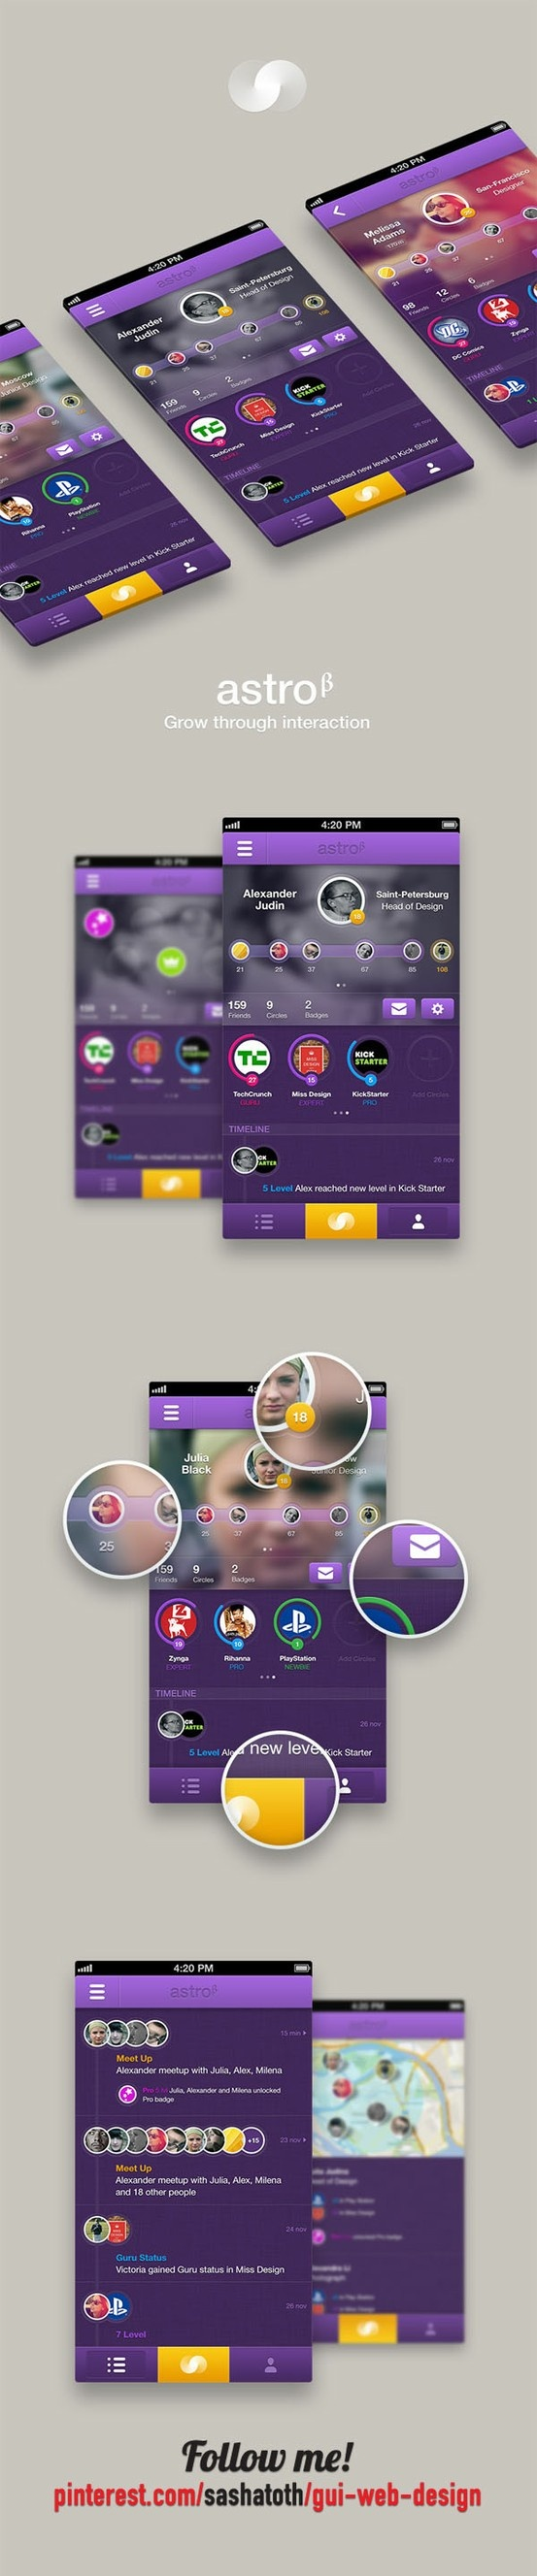 Astro / Grow through interaction by Alexandr Judin, via Behance *** Astro is part game and part social network. It creates an interactive environment where you can easily meet like-minded people, grow within your circles and become popular.